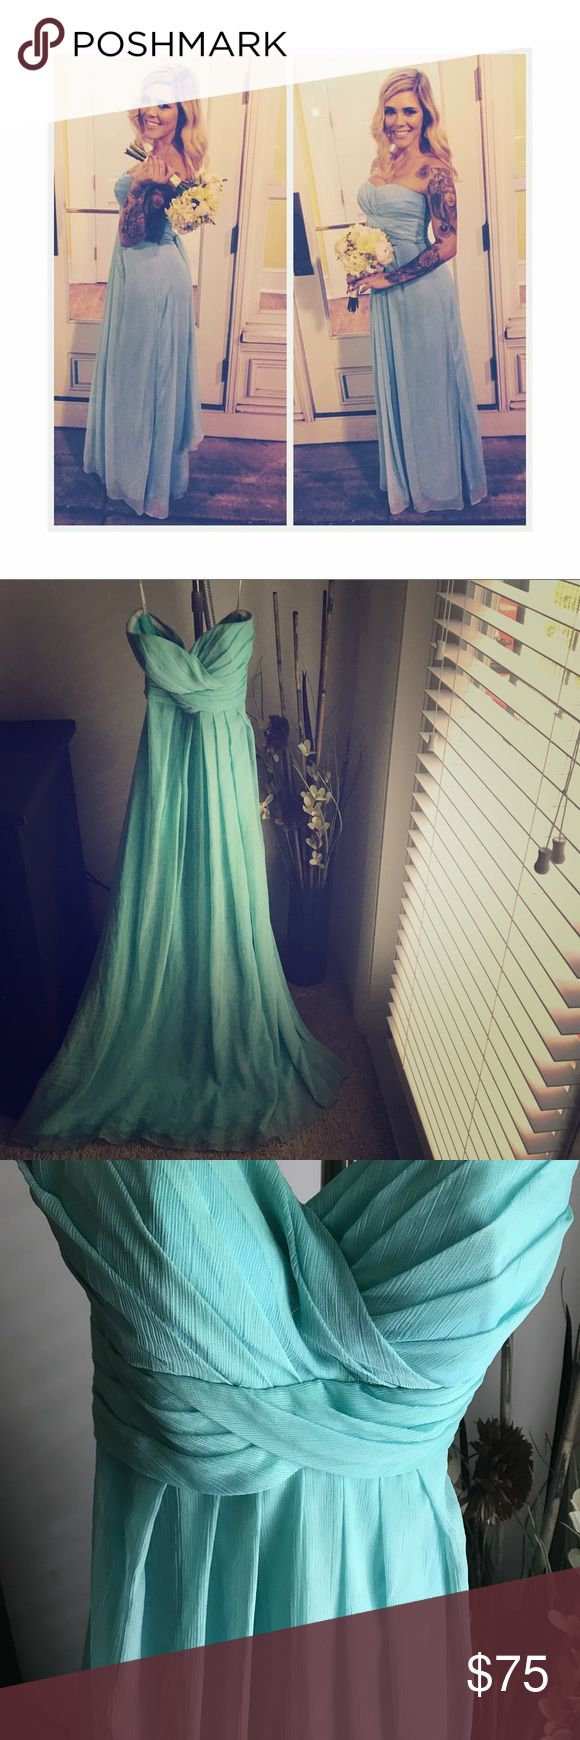 Bari Jay size 4 sweetheart aqua formal dress PERFECT FOR --> Wedding /Bridesmaid /Prom / Homecoming !! Bari Jay size 4 Sweetheart top Aqua blue floor length gown with detachable straps ! Worn once for wedding ! Super pretty  / gently used ! bari jay Dresses Strapless